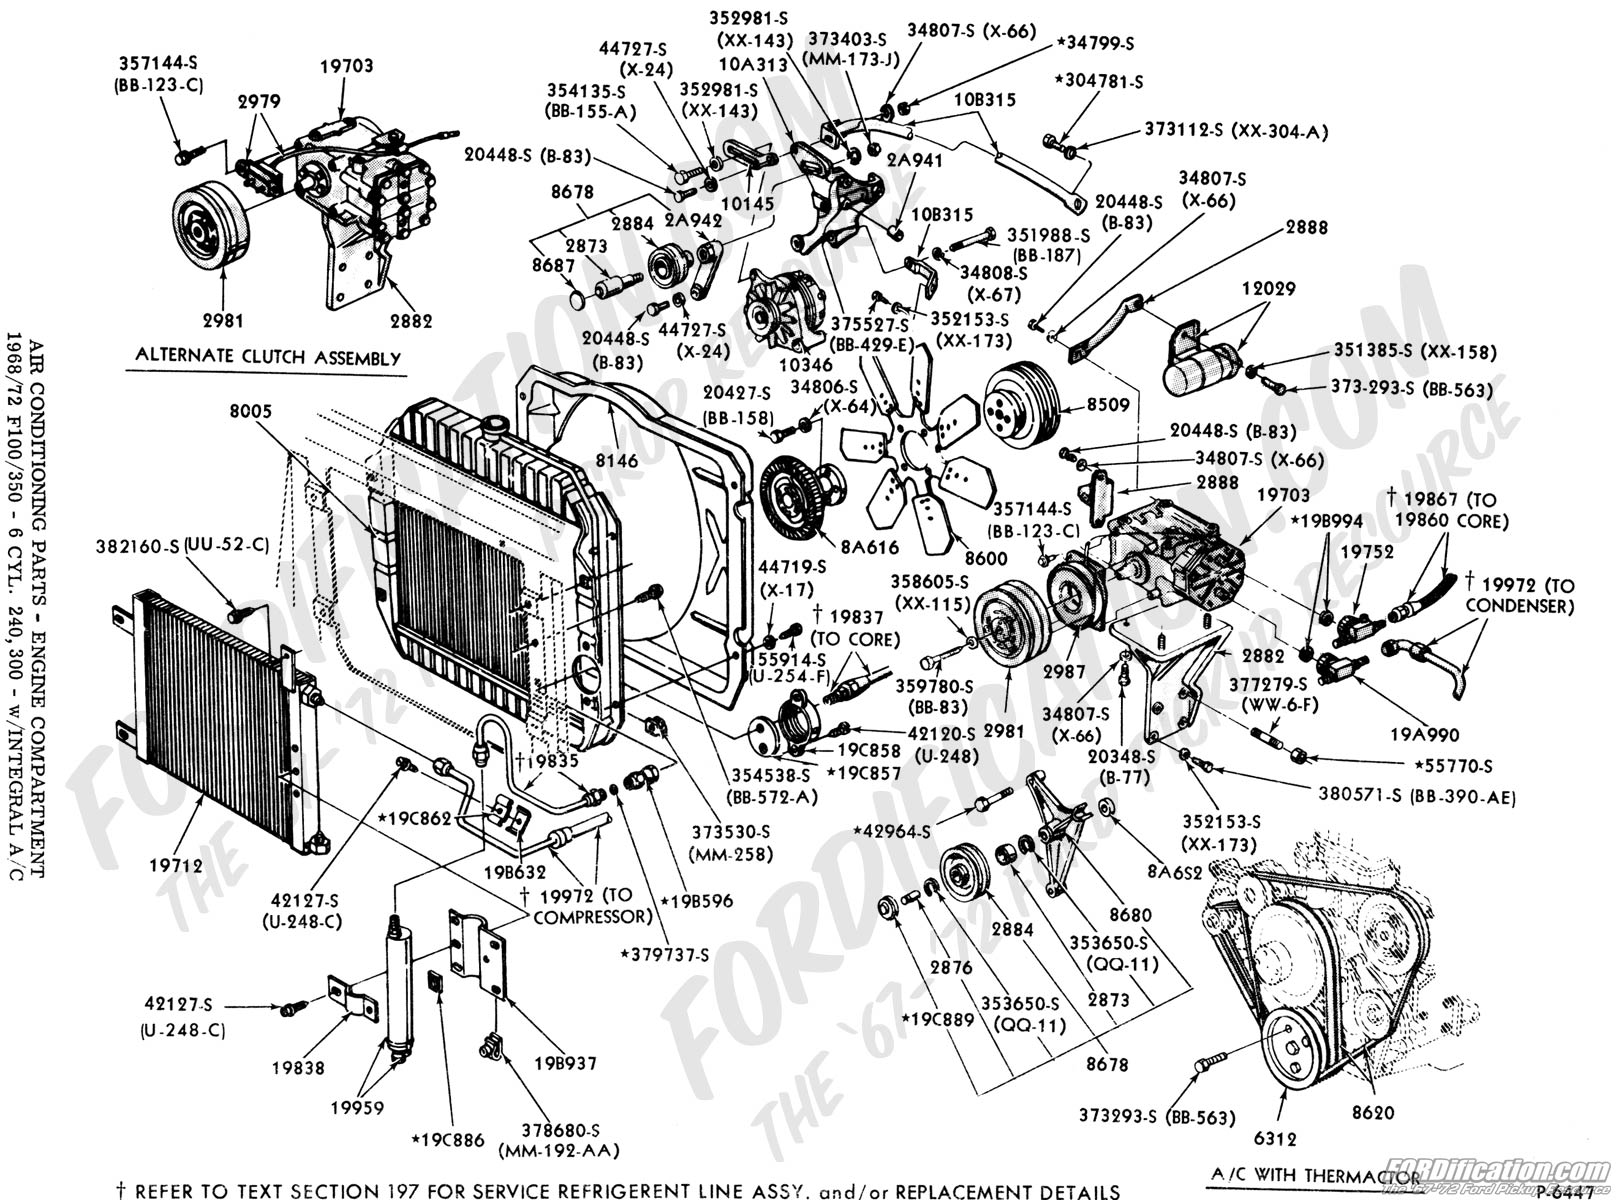 RepairGuideContent besides Wiring Diagram For 2001 626 Mazda in addition T22340046 Diagram vacuum pipes engine mussa together with 12 Volt Rv Wiring Diagram together with Subaru Outback Fuel Pump Relay Location. on vw starter wiring diagram